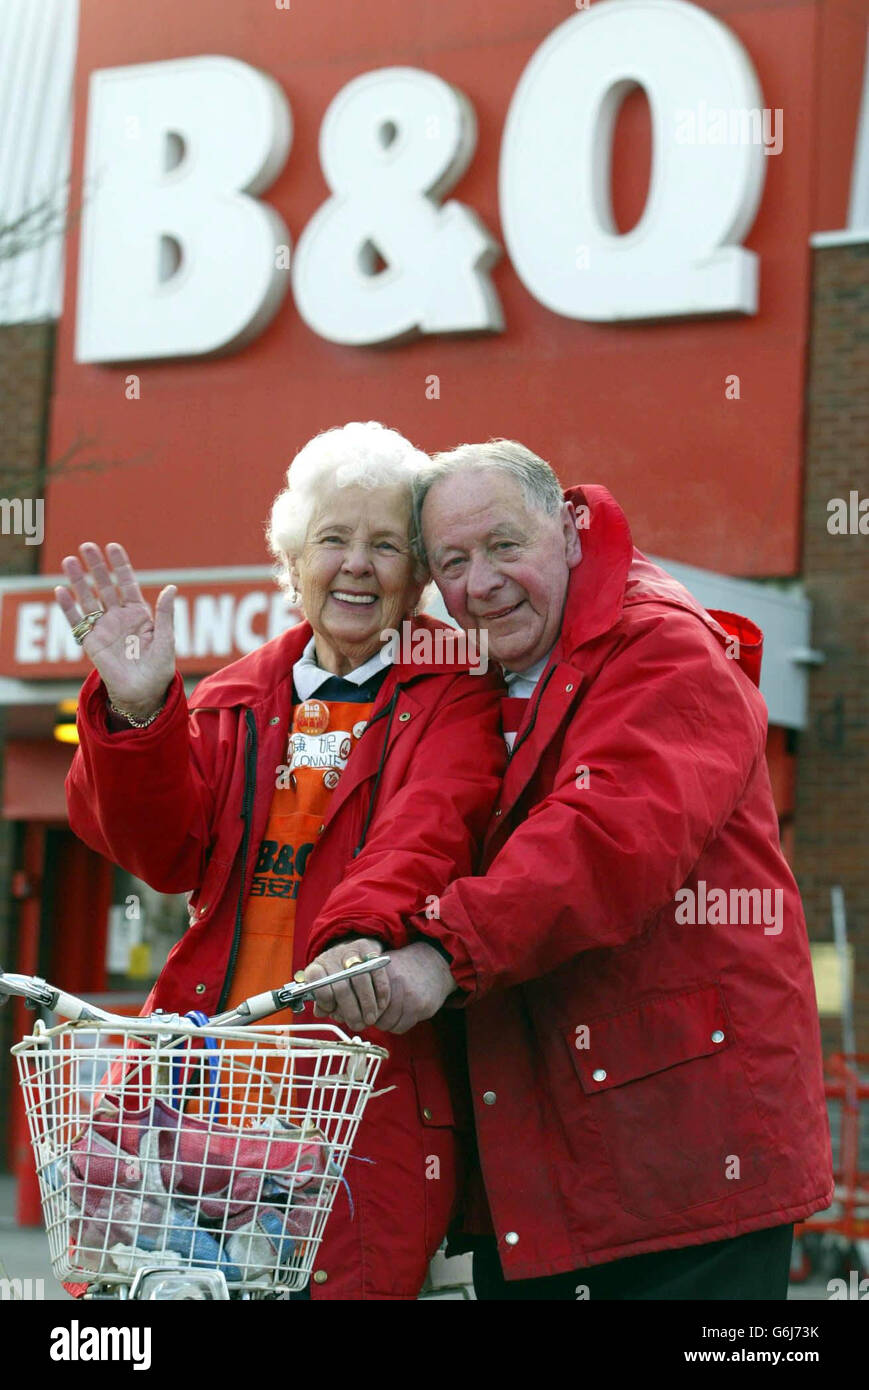 SOCIAL B&Q Birthday - Stock Image